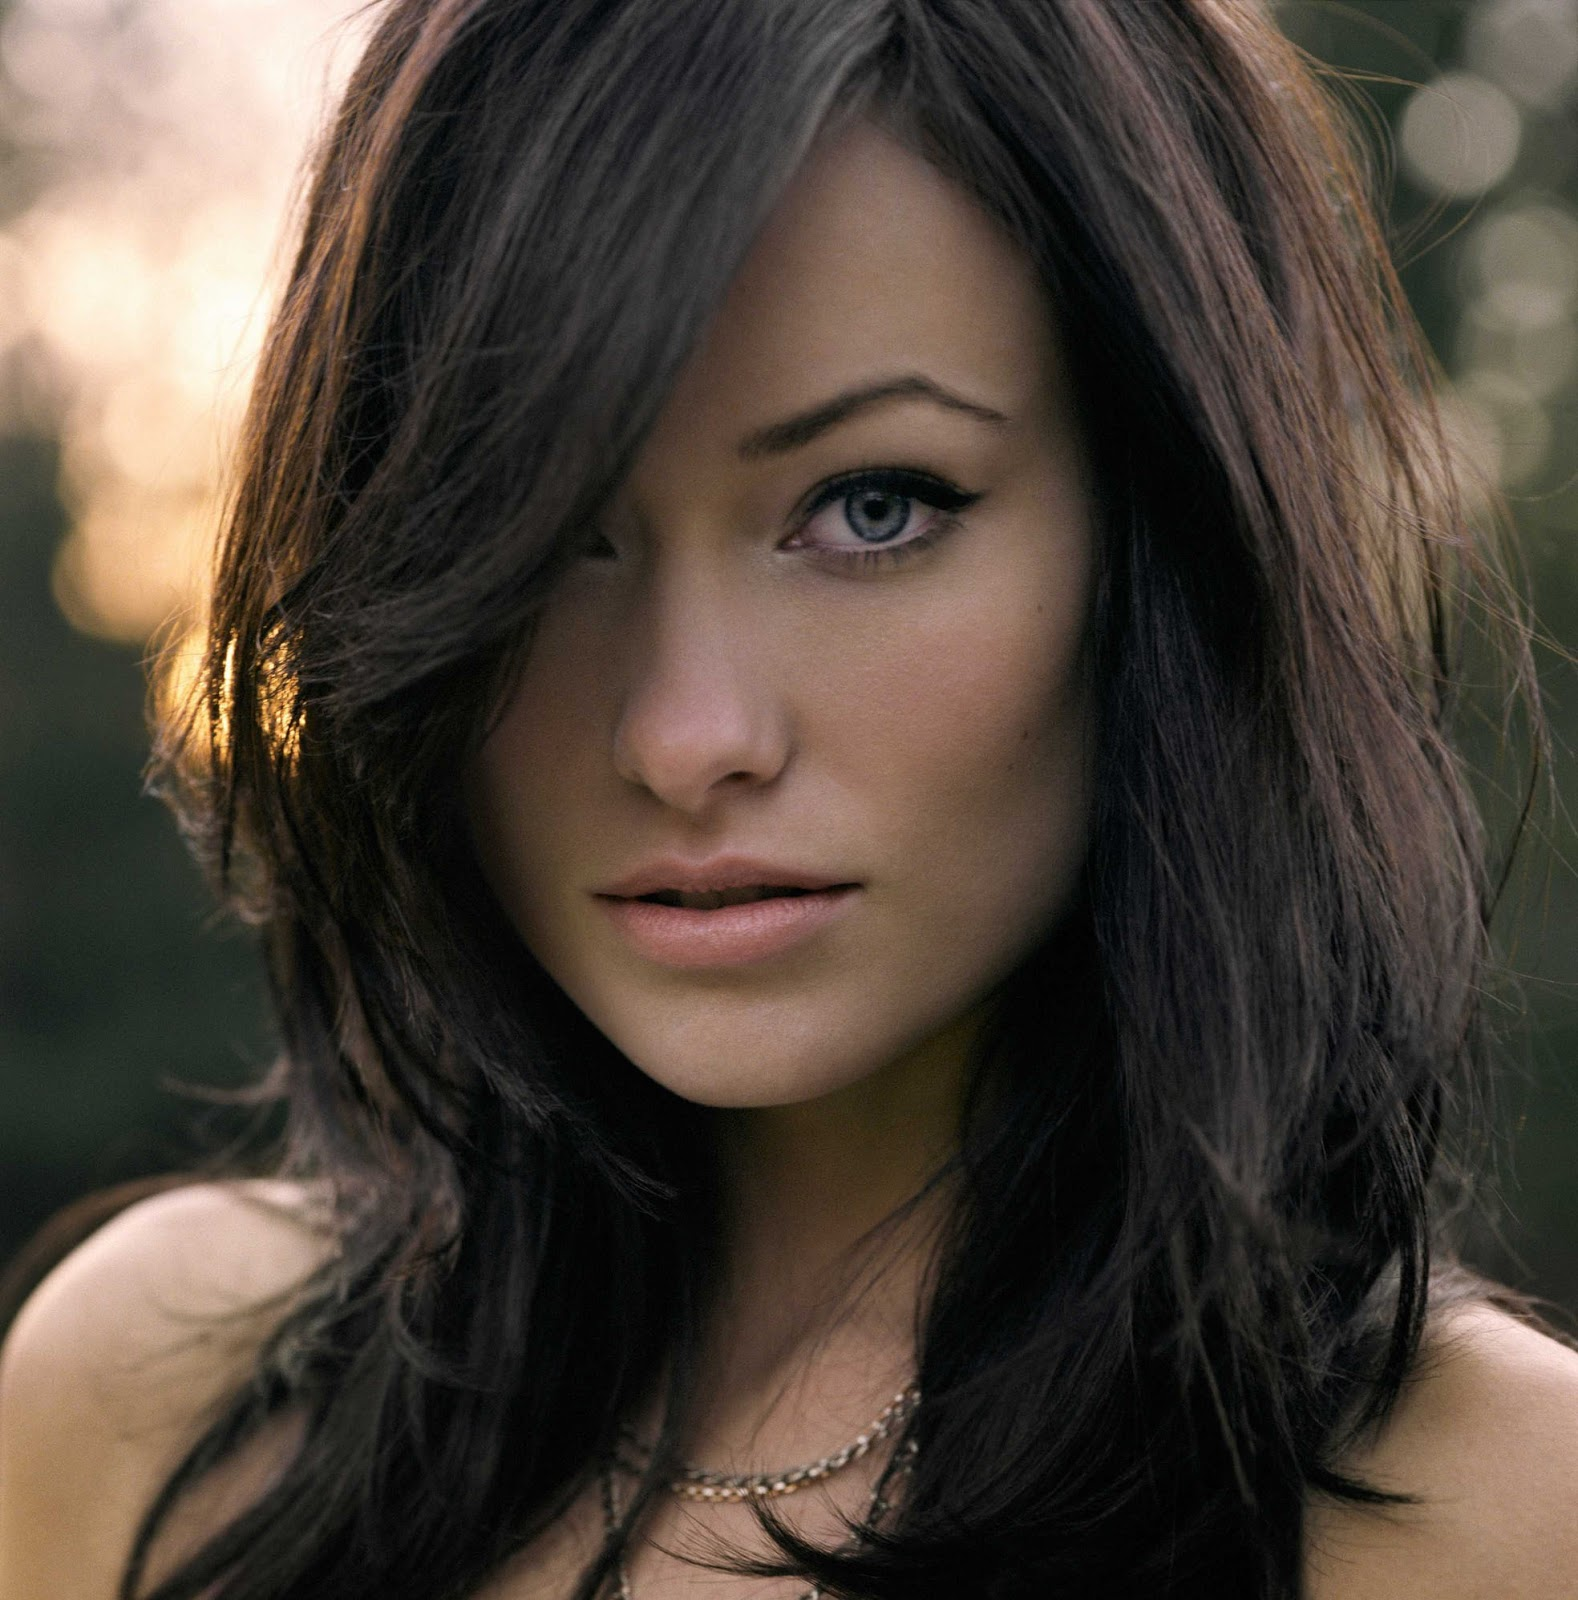 Olivia Wilde Tron Legacy Multi Monitor For Desktop - olivia wilde tron legacy multi monitor wallpapers